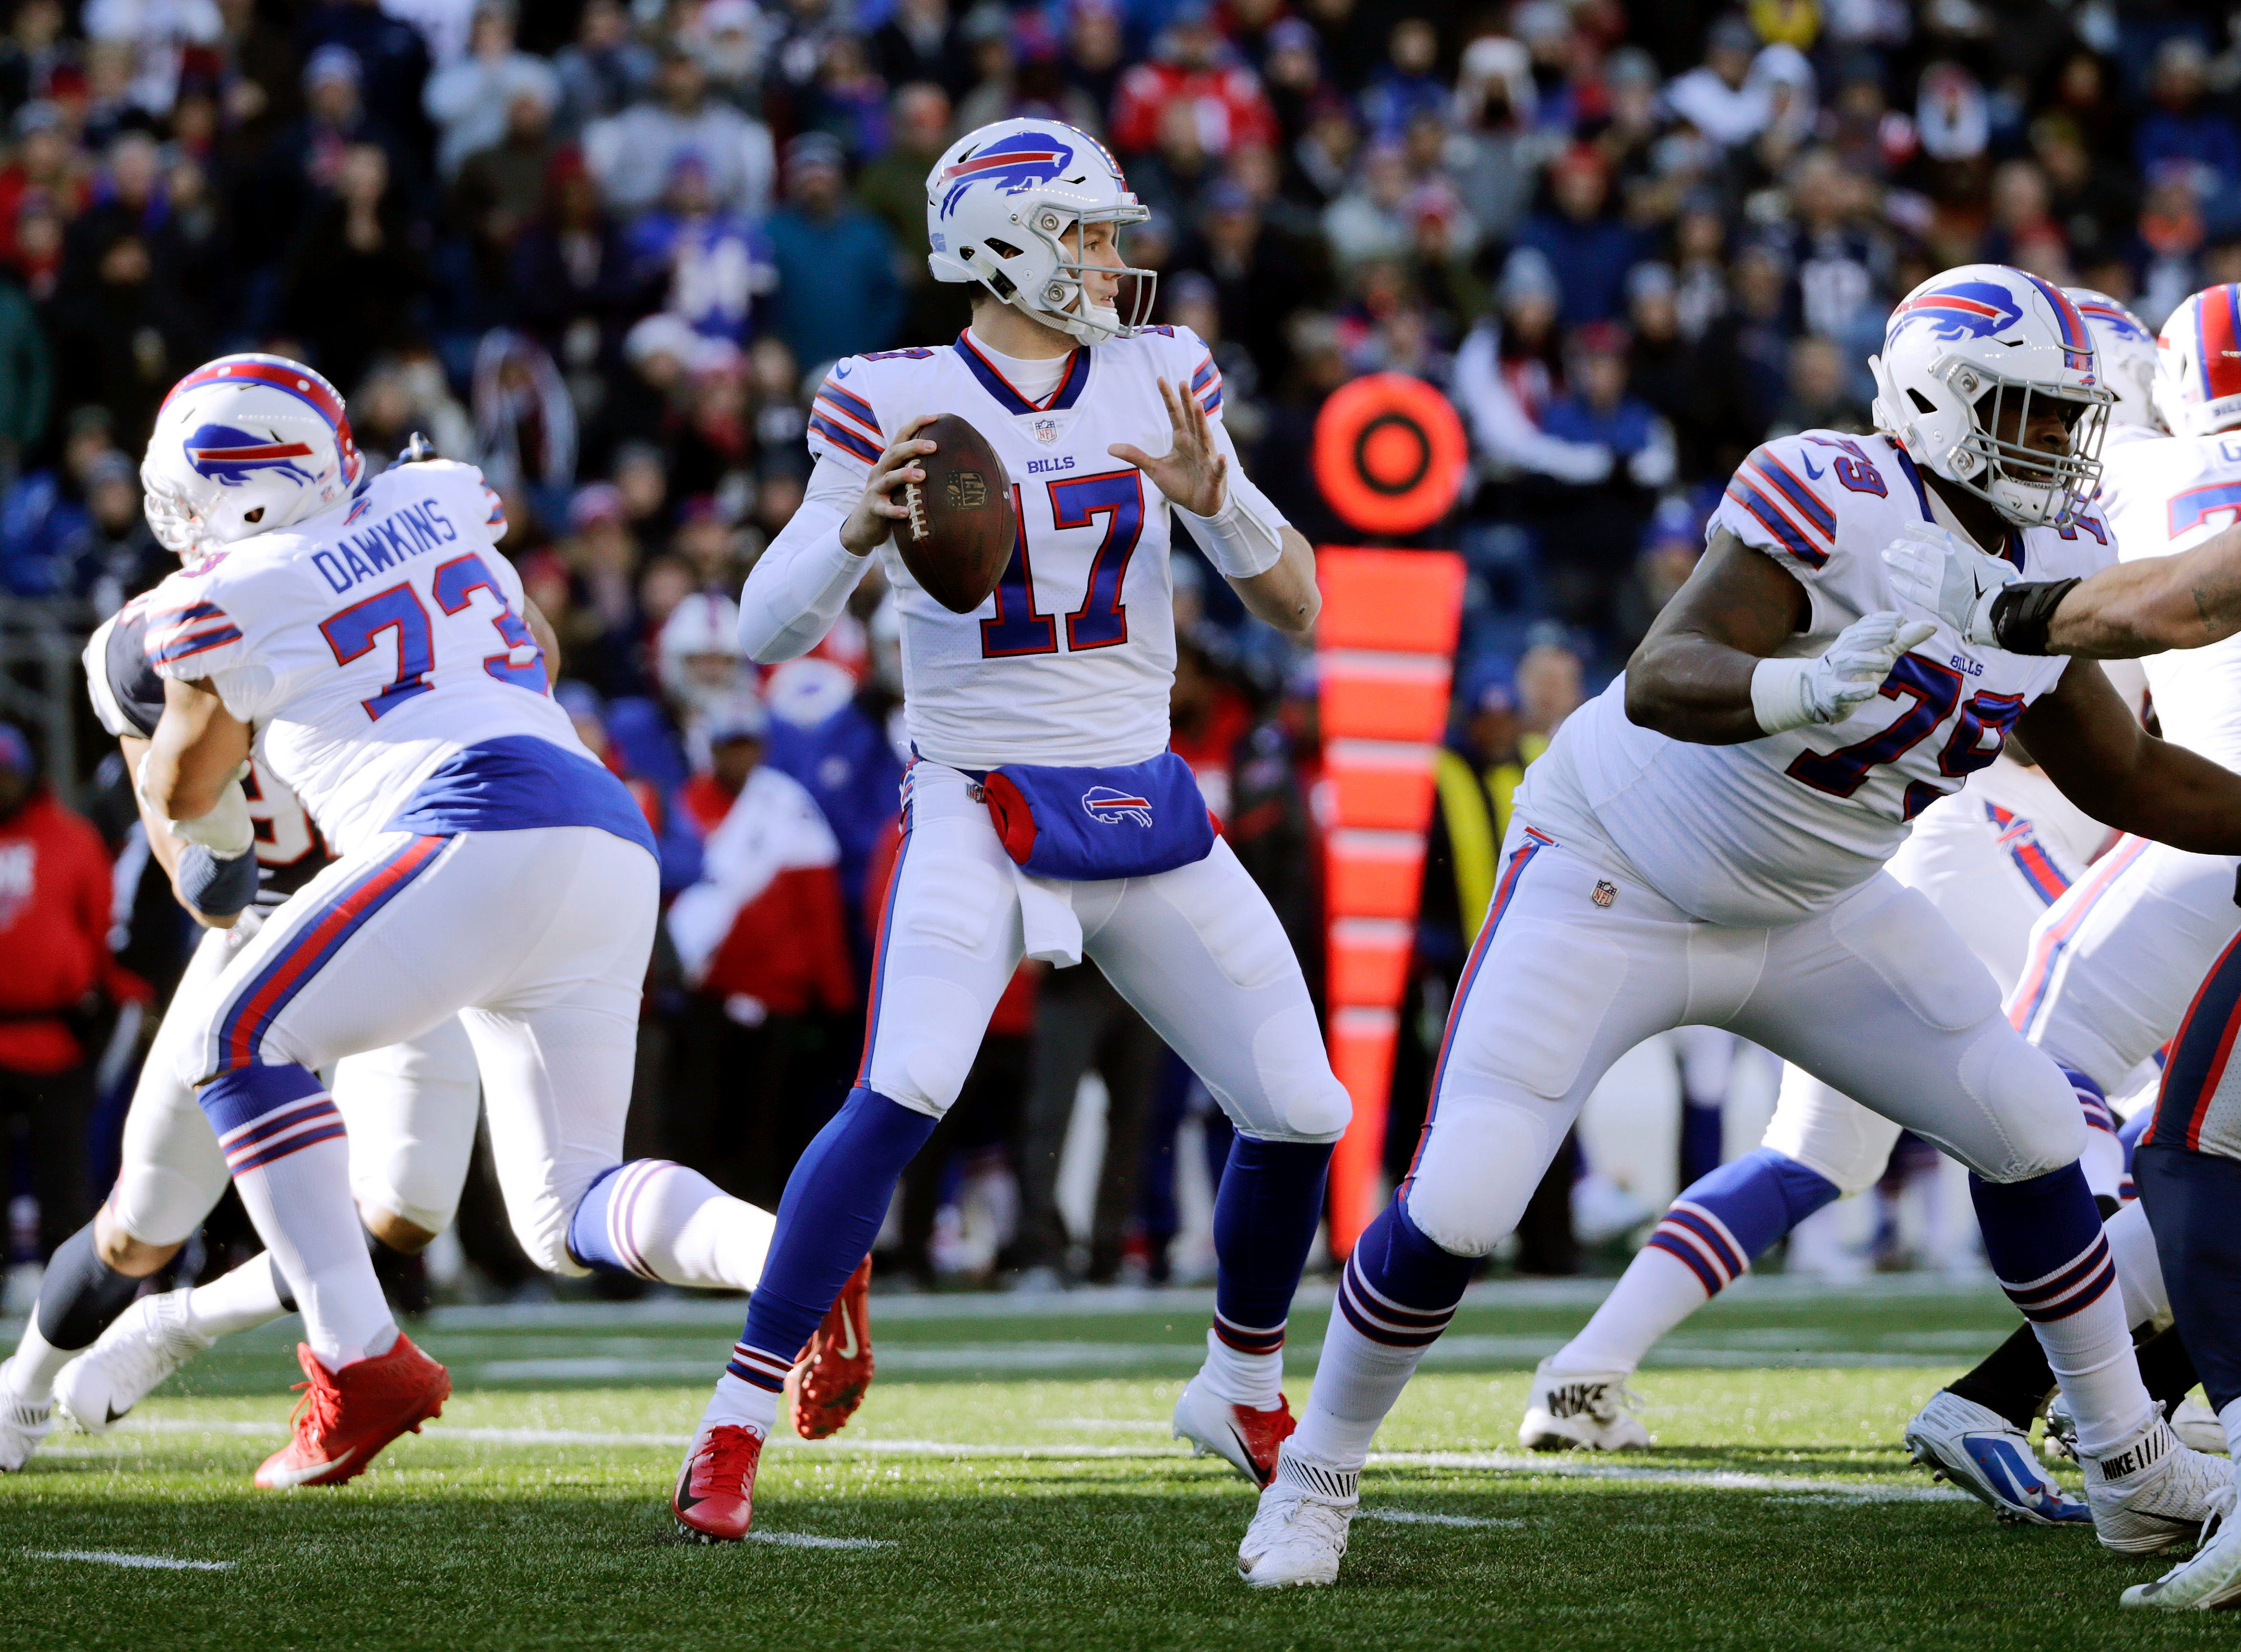 Buffalo Bills quarterback Josh Allen (17) drops back to pass against the New England Patriots during the first half of an NFL football game, Sunday, Dec. 23, 2018, in Foxborough, Mass. (AP Photo/Elise Amendola)